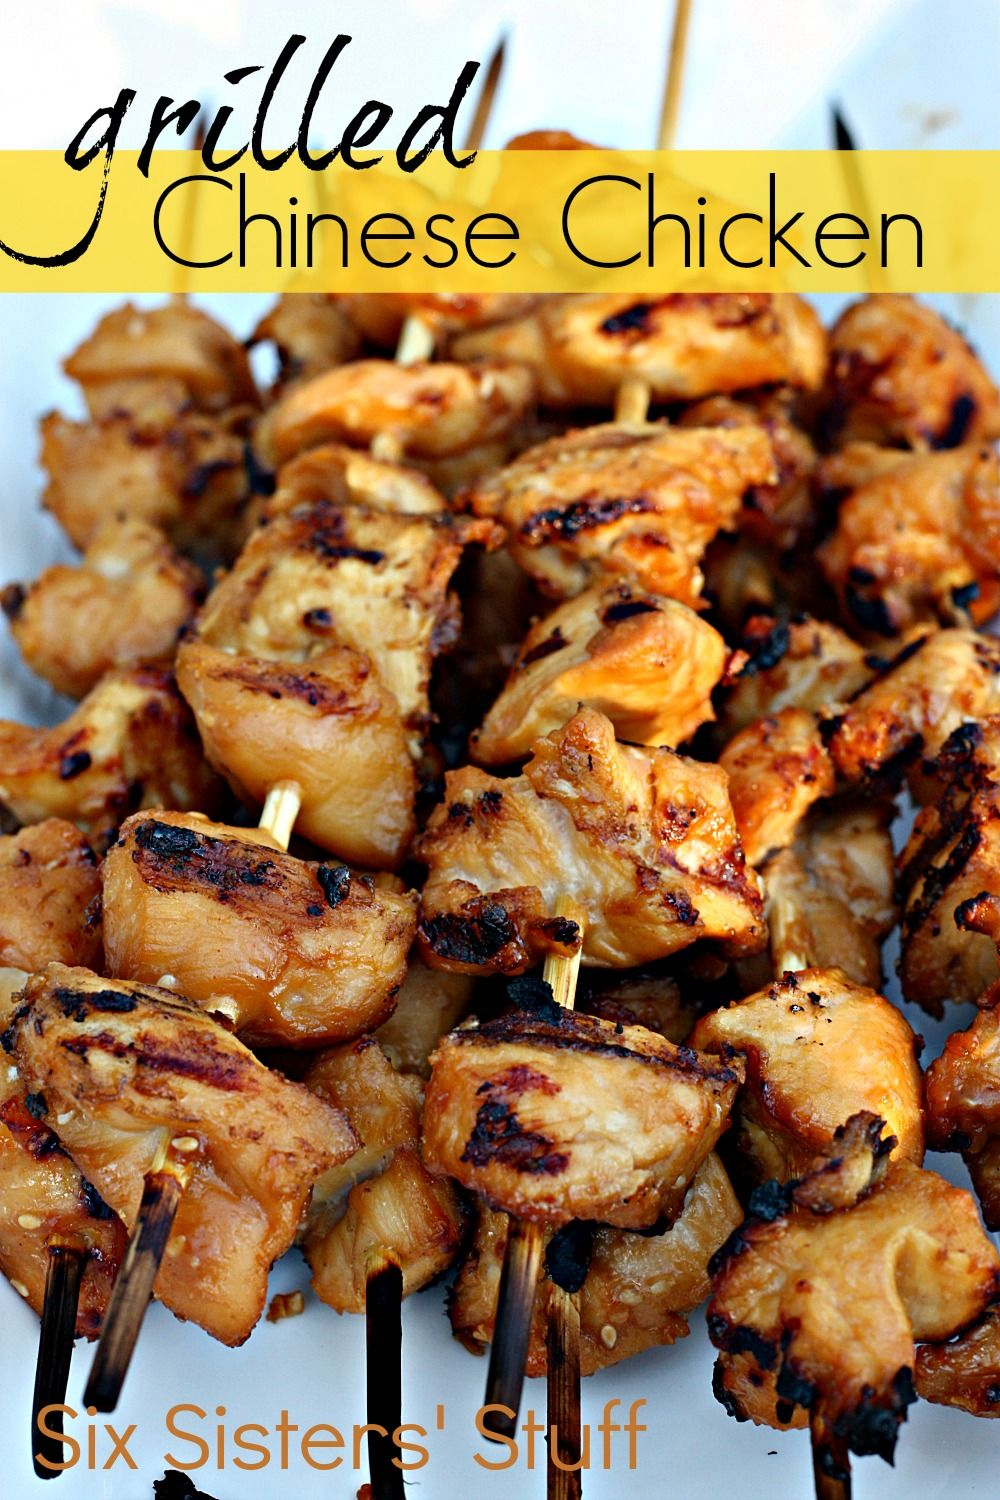 How long do i grill chicken skewers - Grilled Chinese Chicken